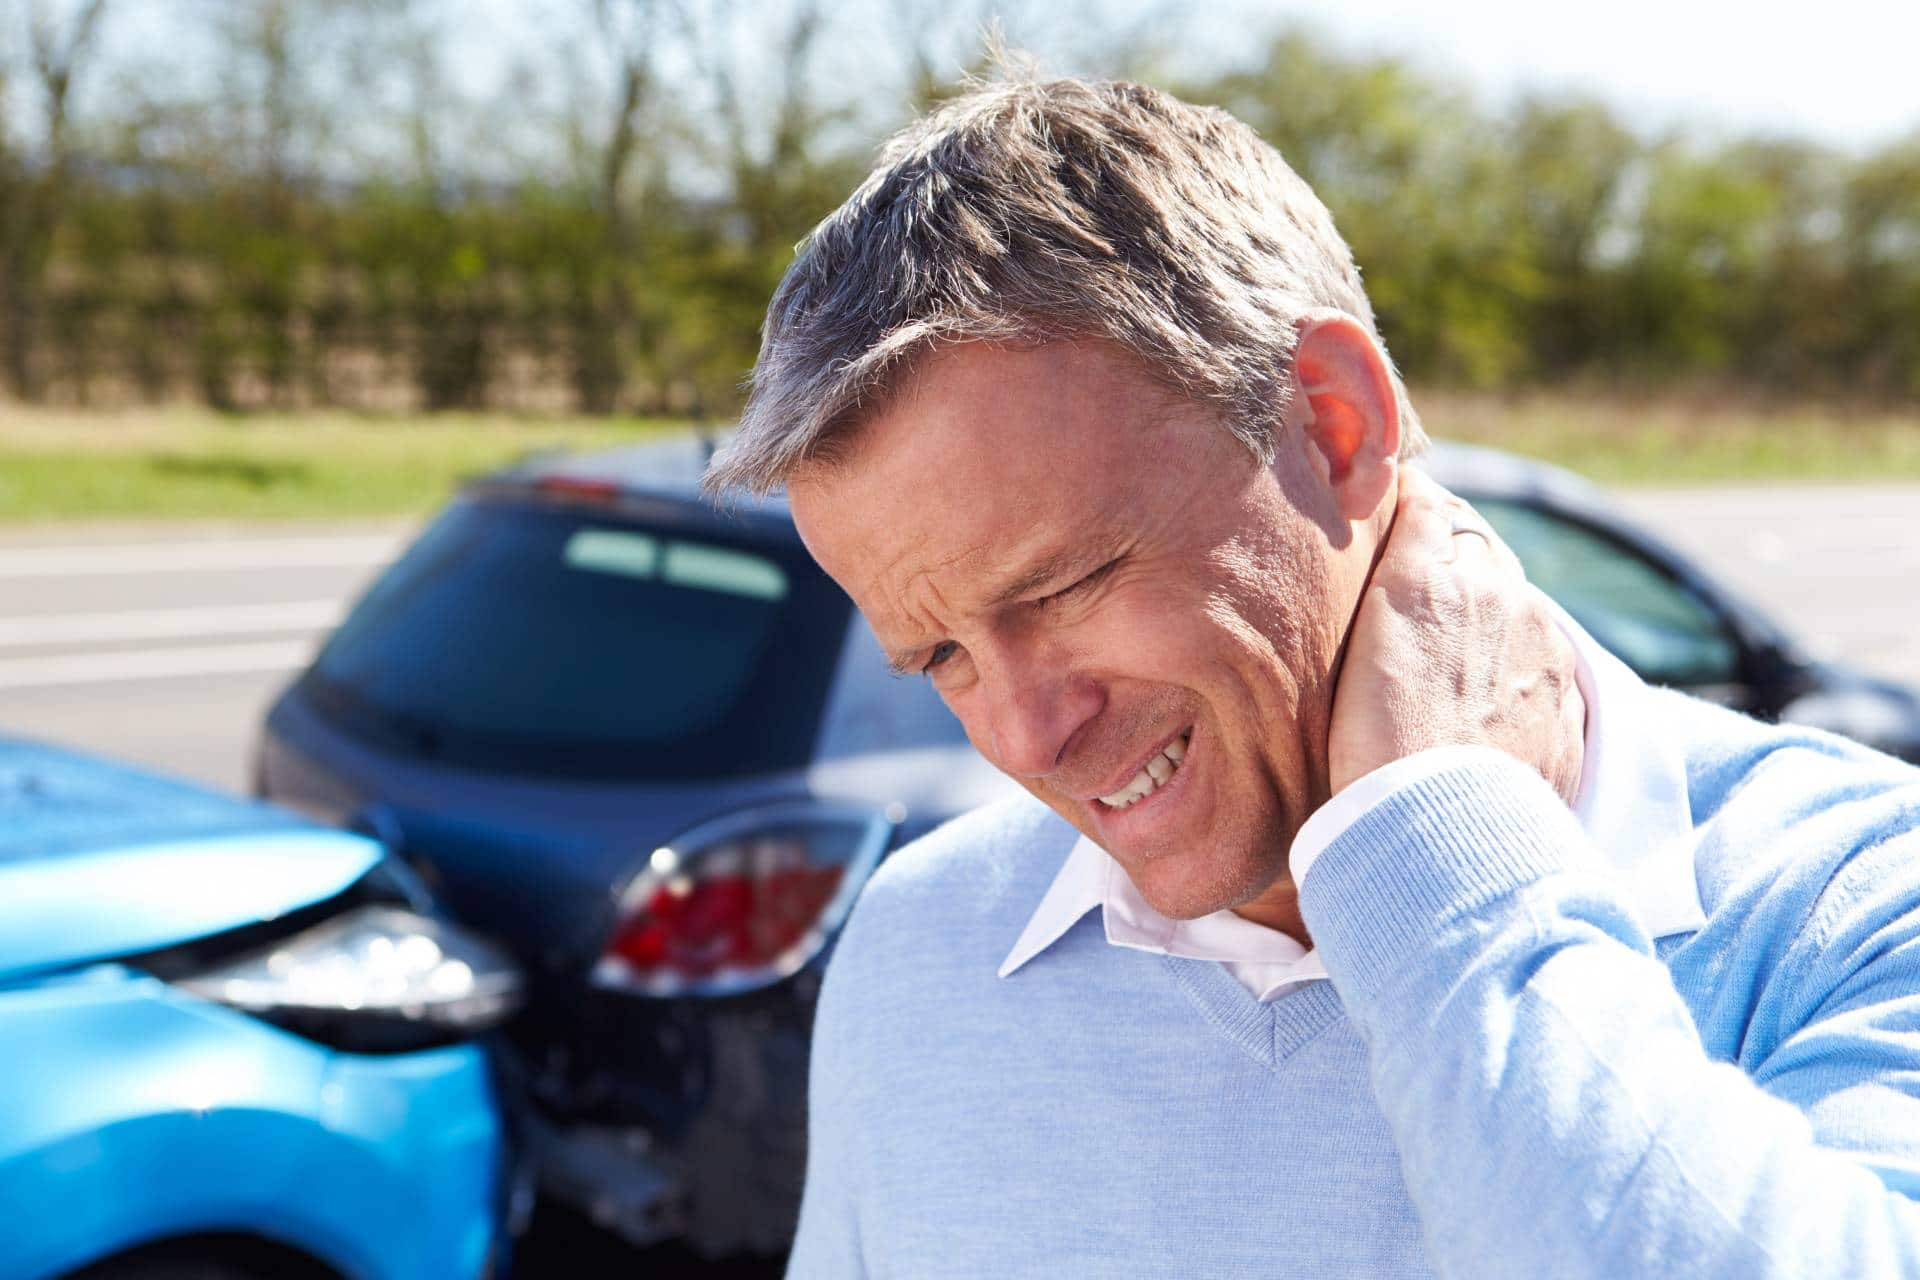 Hurt in an auto accident? Schedule a free consultation with our personal injury lawyers at the Angell Law Firm in Brookhaven.